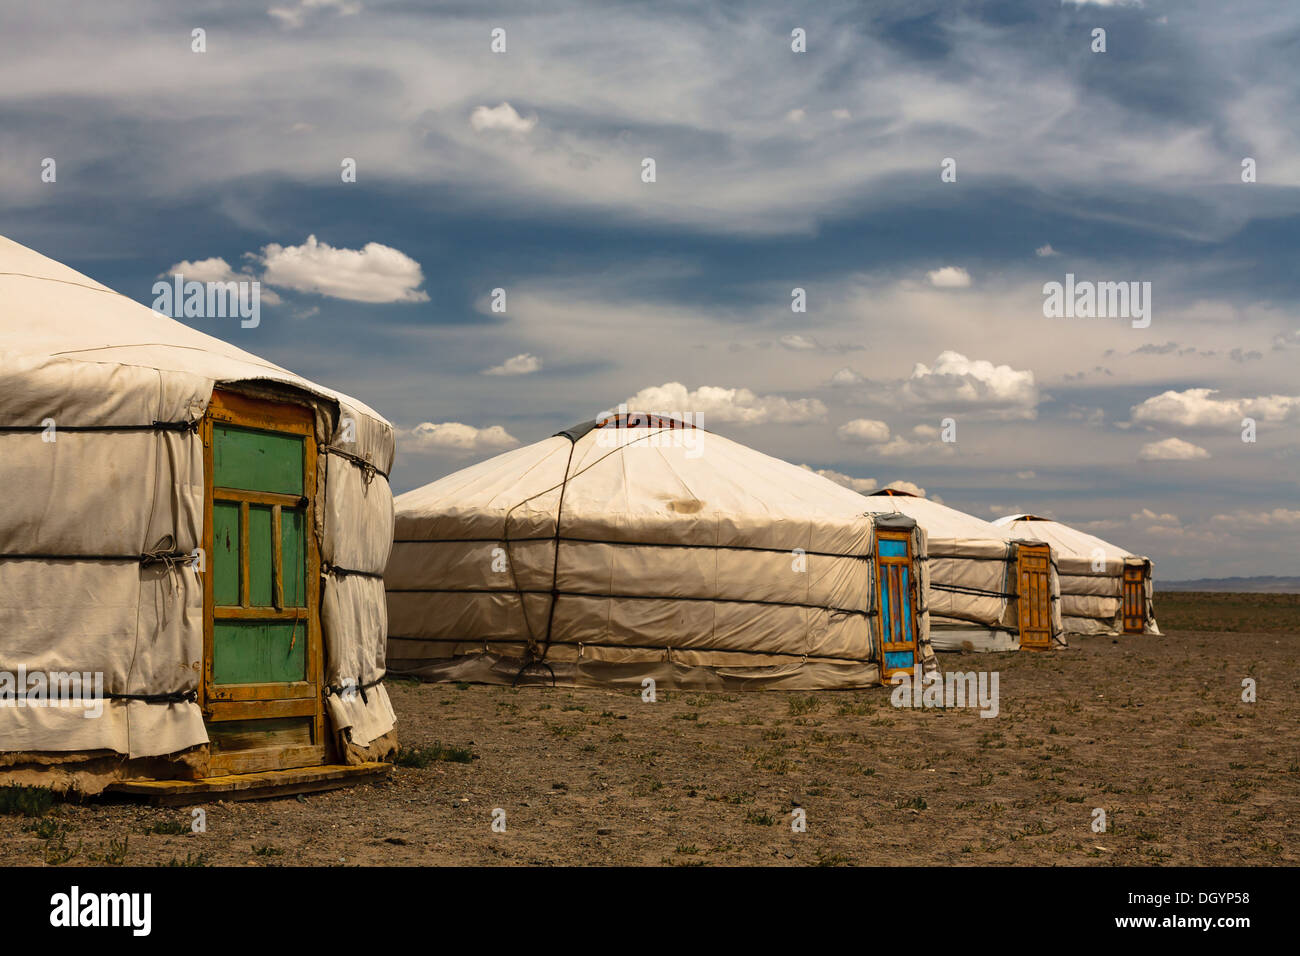 Four Traditional Tent Homes Of The Nomads Called Gers With